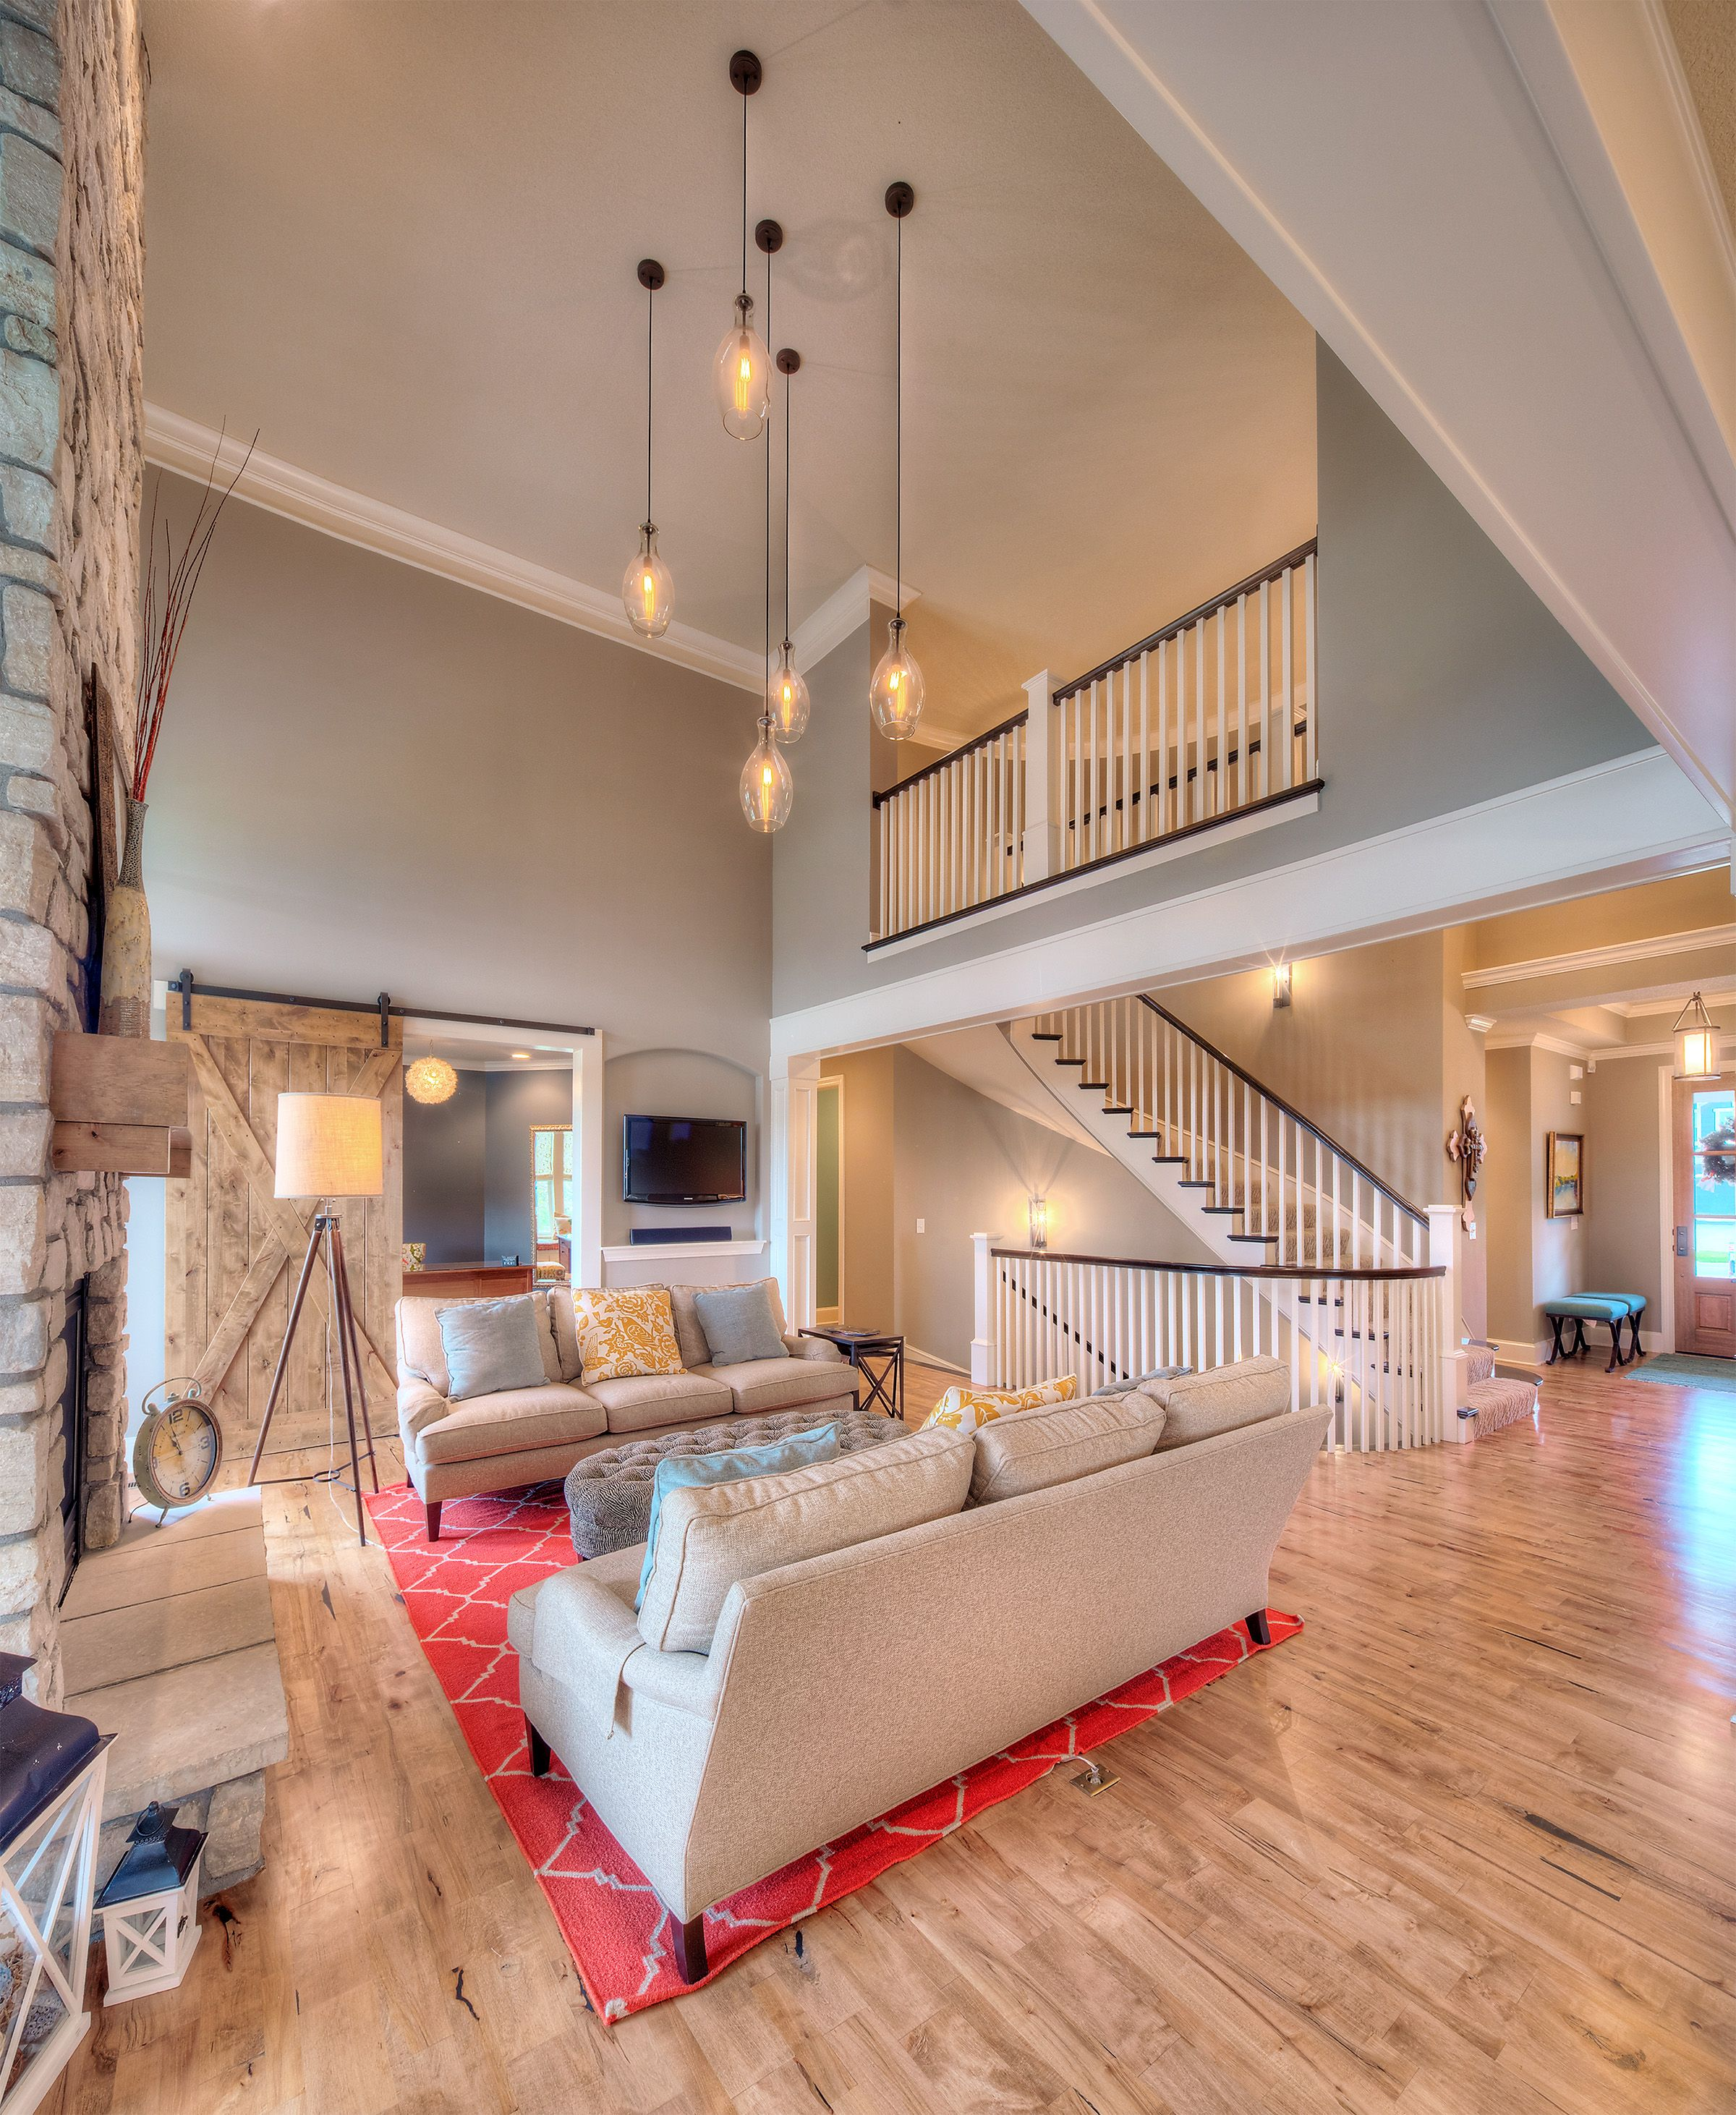 hearthrrom hardwood floors pendant lighting second floor the cottonwood iii is a floor plan designed exclusively for starr homes and our locations in the kansas city ks area